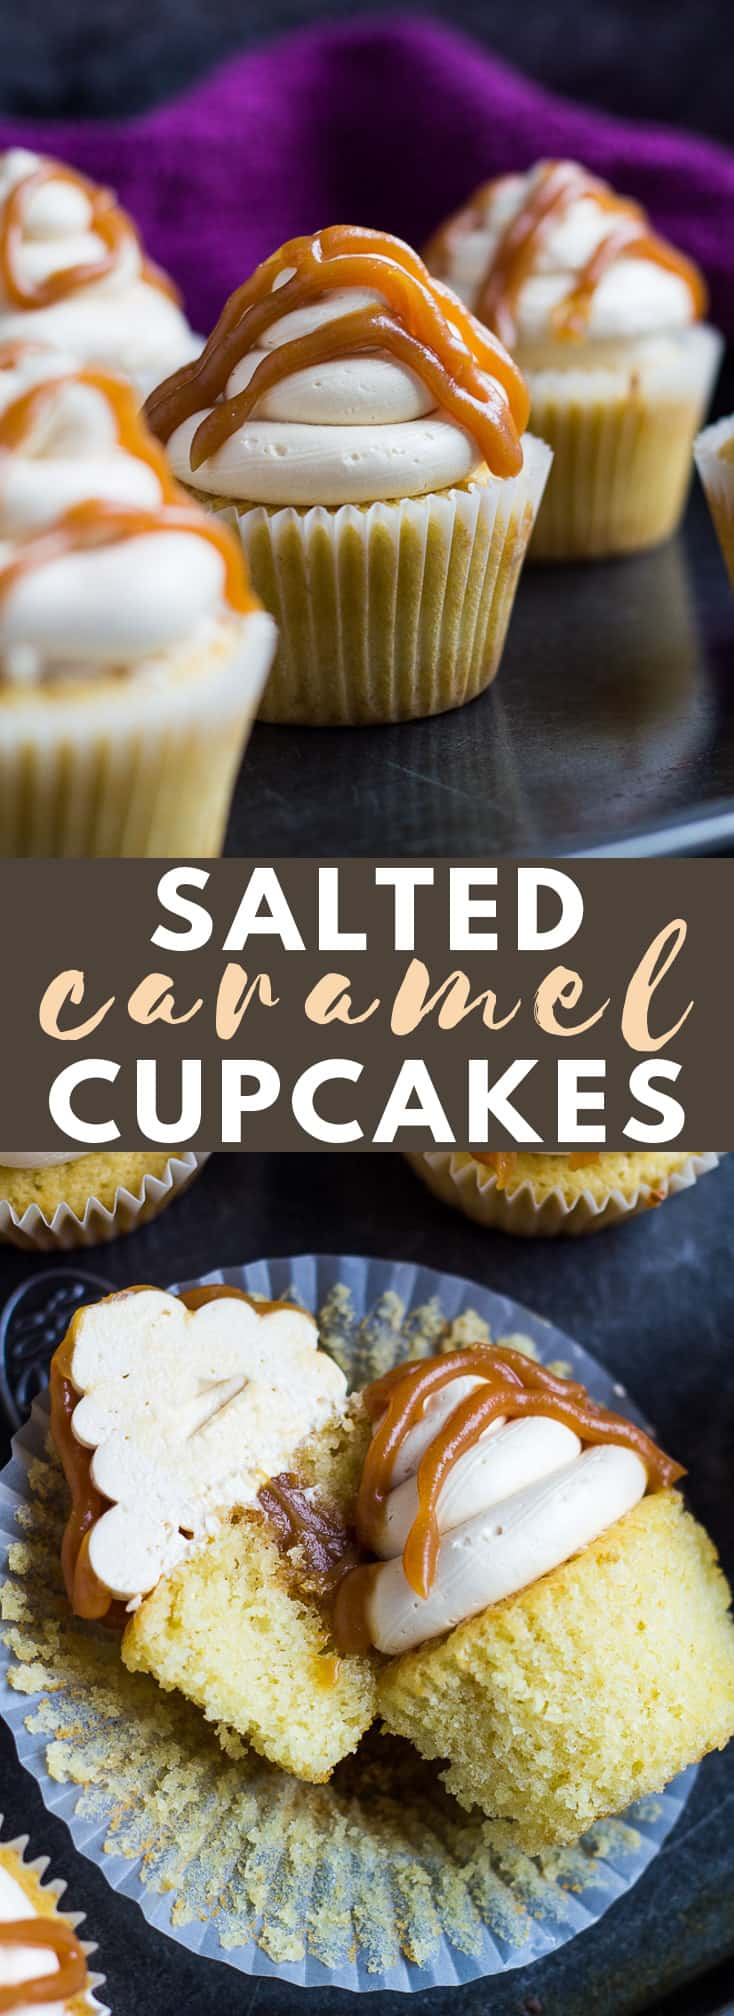 Salted Caramel Cupcakes - Deliciously moist and fluffy vanilla cupcakes topped with a silky cloud of Swiss meringue caramel buttercream, and filled and drizzled with salted caramel! #saltedcaramel #cupcakes #cupcakerecipes